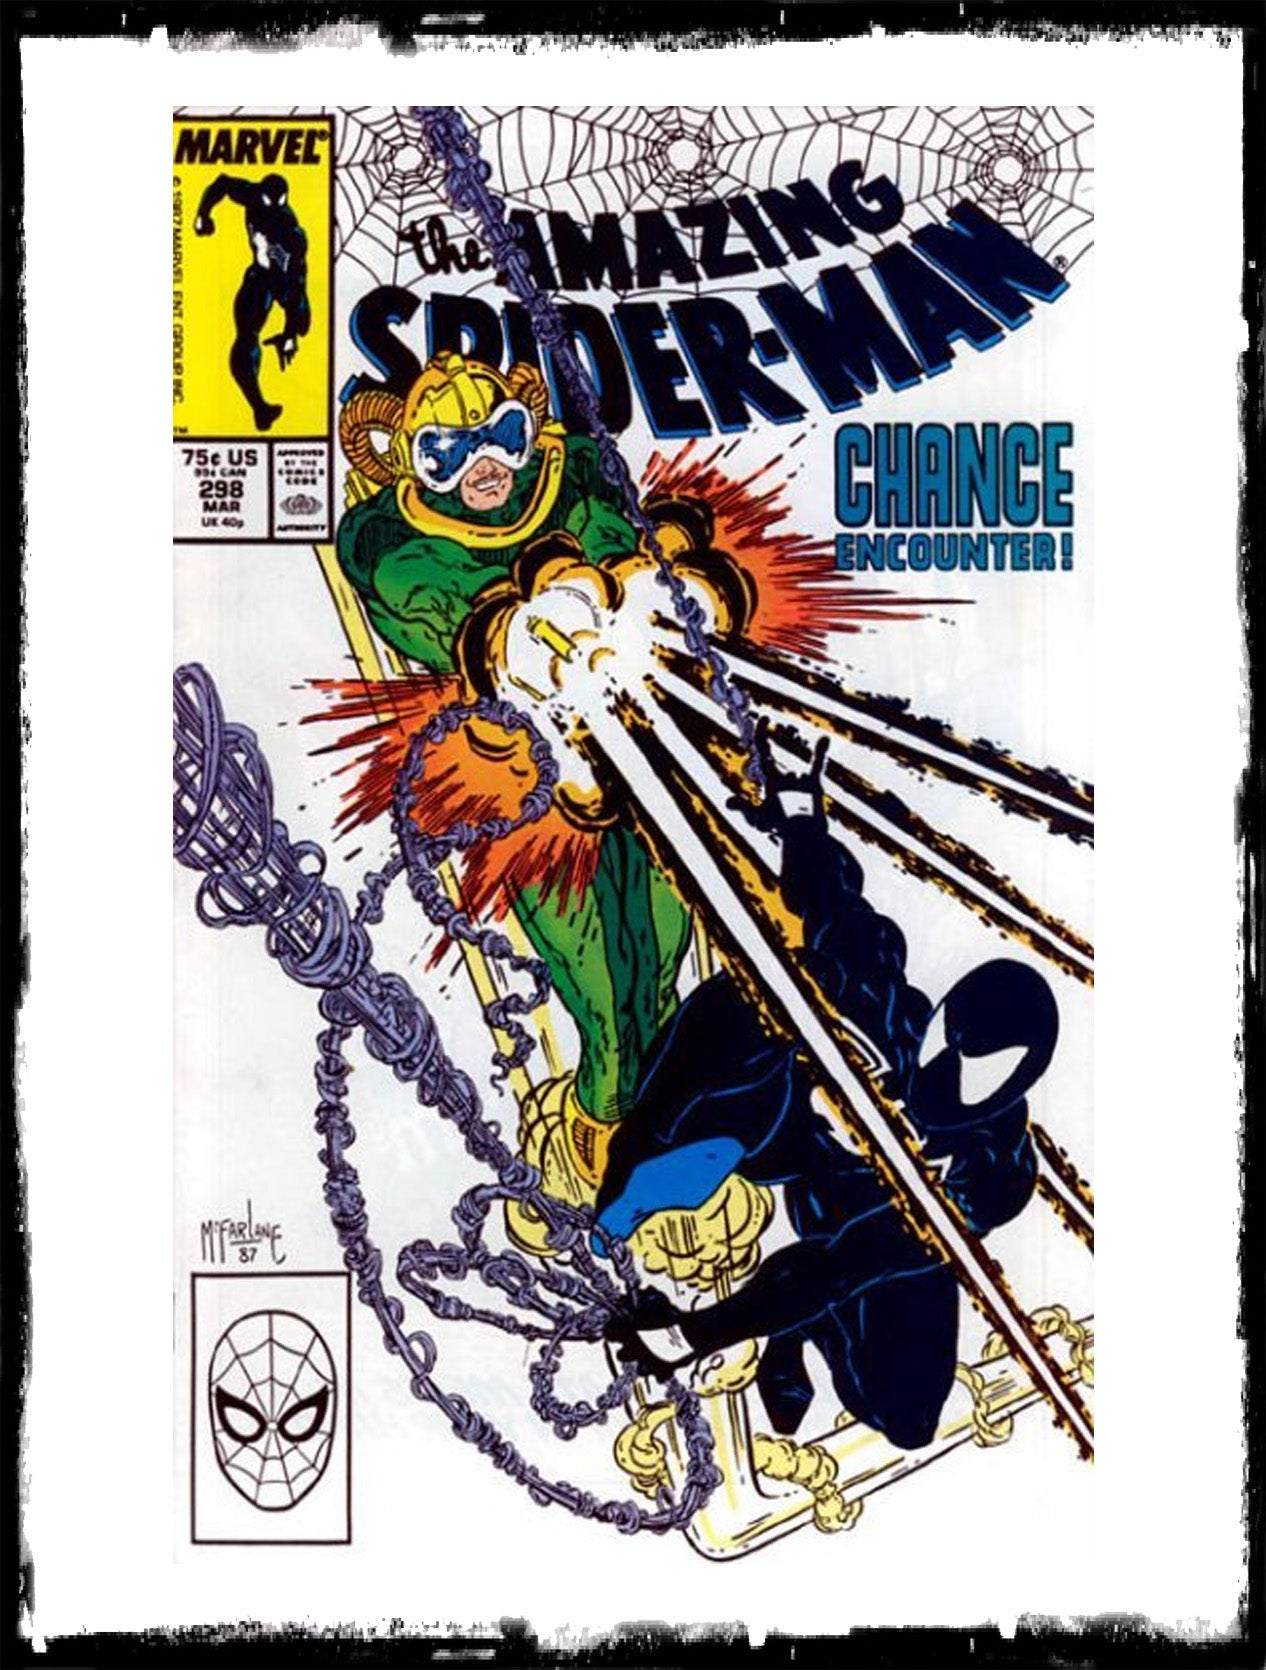 AMAZING SPIDER-MAN - #298 FIRST TODD McFARLANE ON SPIDER-MAN (1988 - VF+/NM)